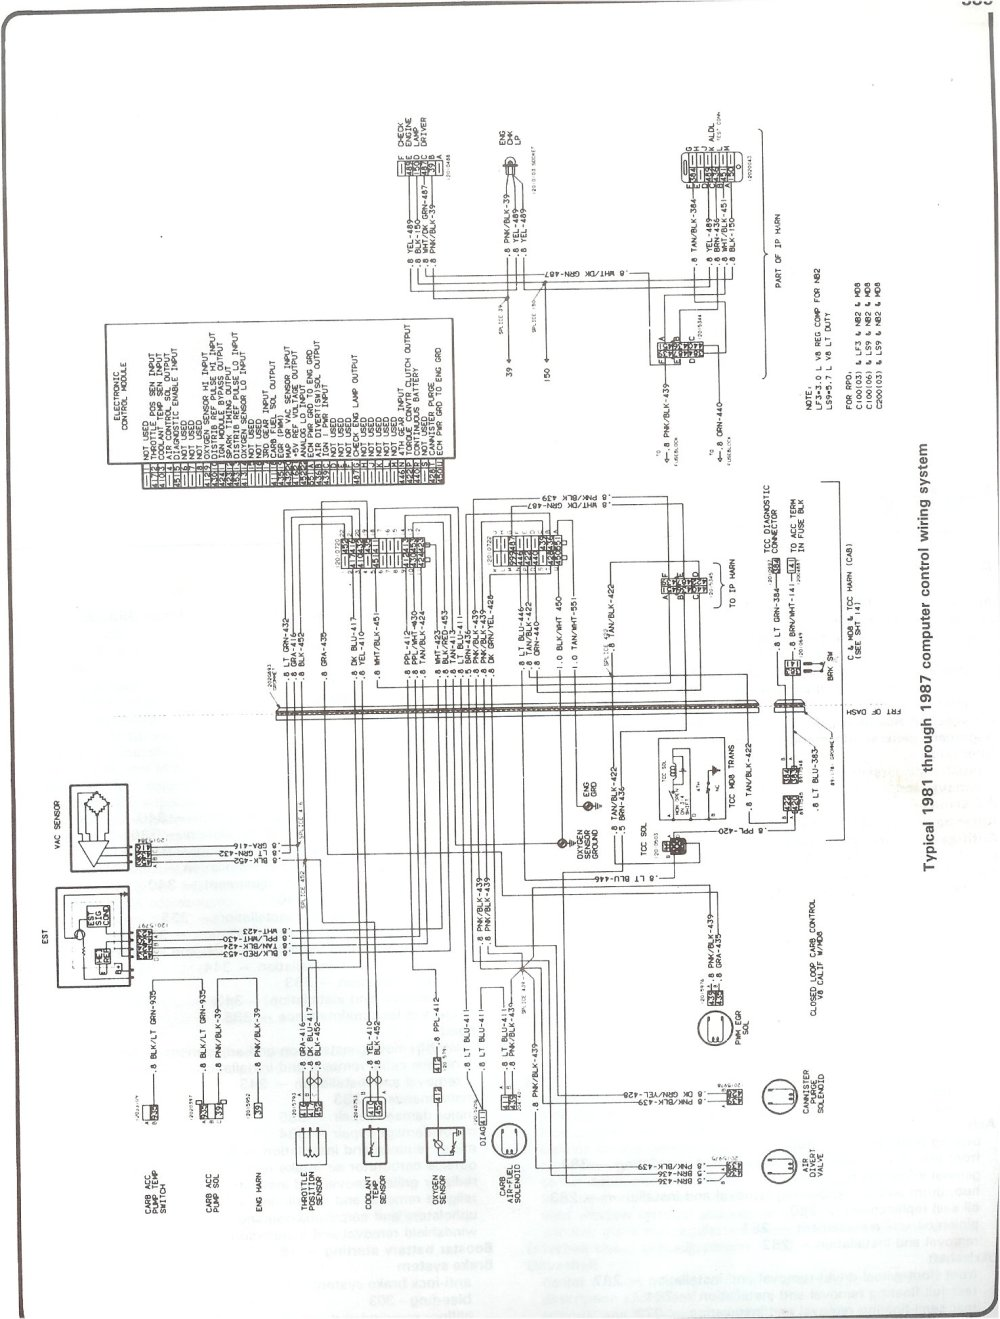 medium resolution of complete 73 87 wiring diagrams silverado wiring diagram 81 87 computer control wiring